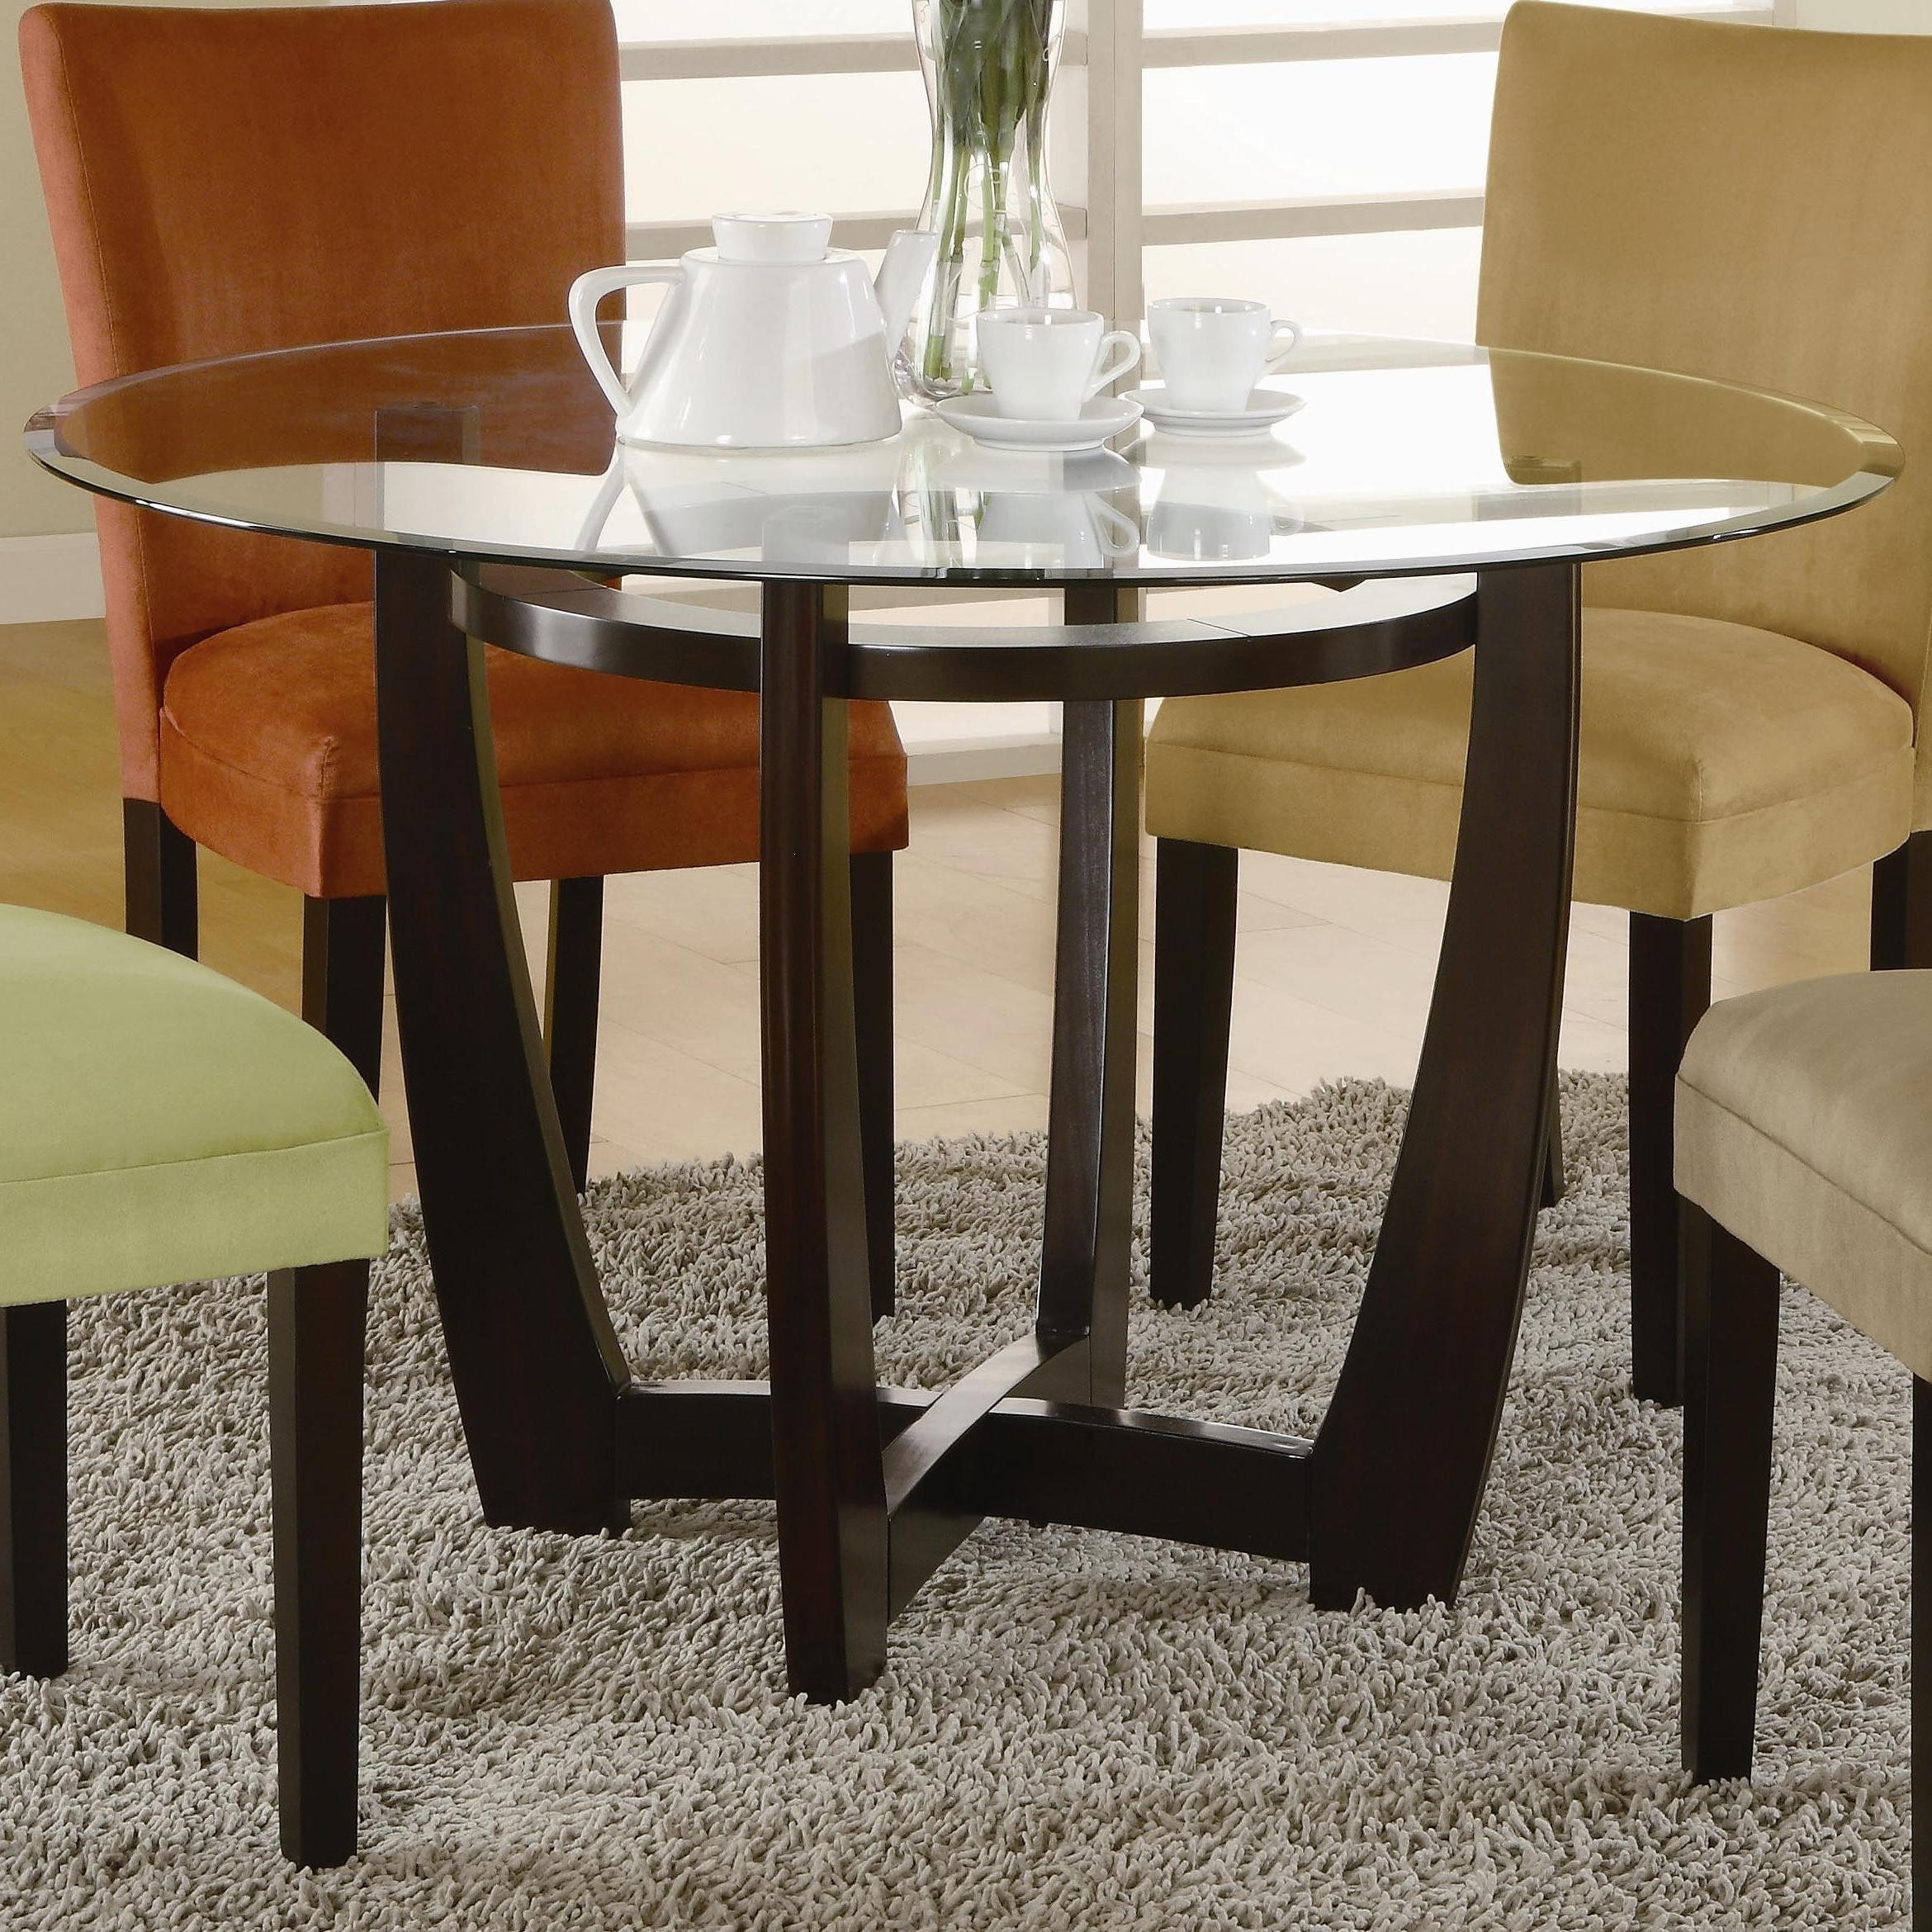 Glass And Chrome Dining Tables And Chairs for Well-liked Argos Black Room Chrome Dining Gumtree Wonderful Sets Dunelm Oval